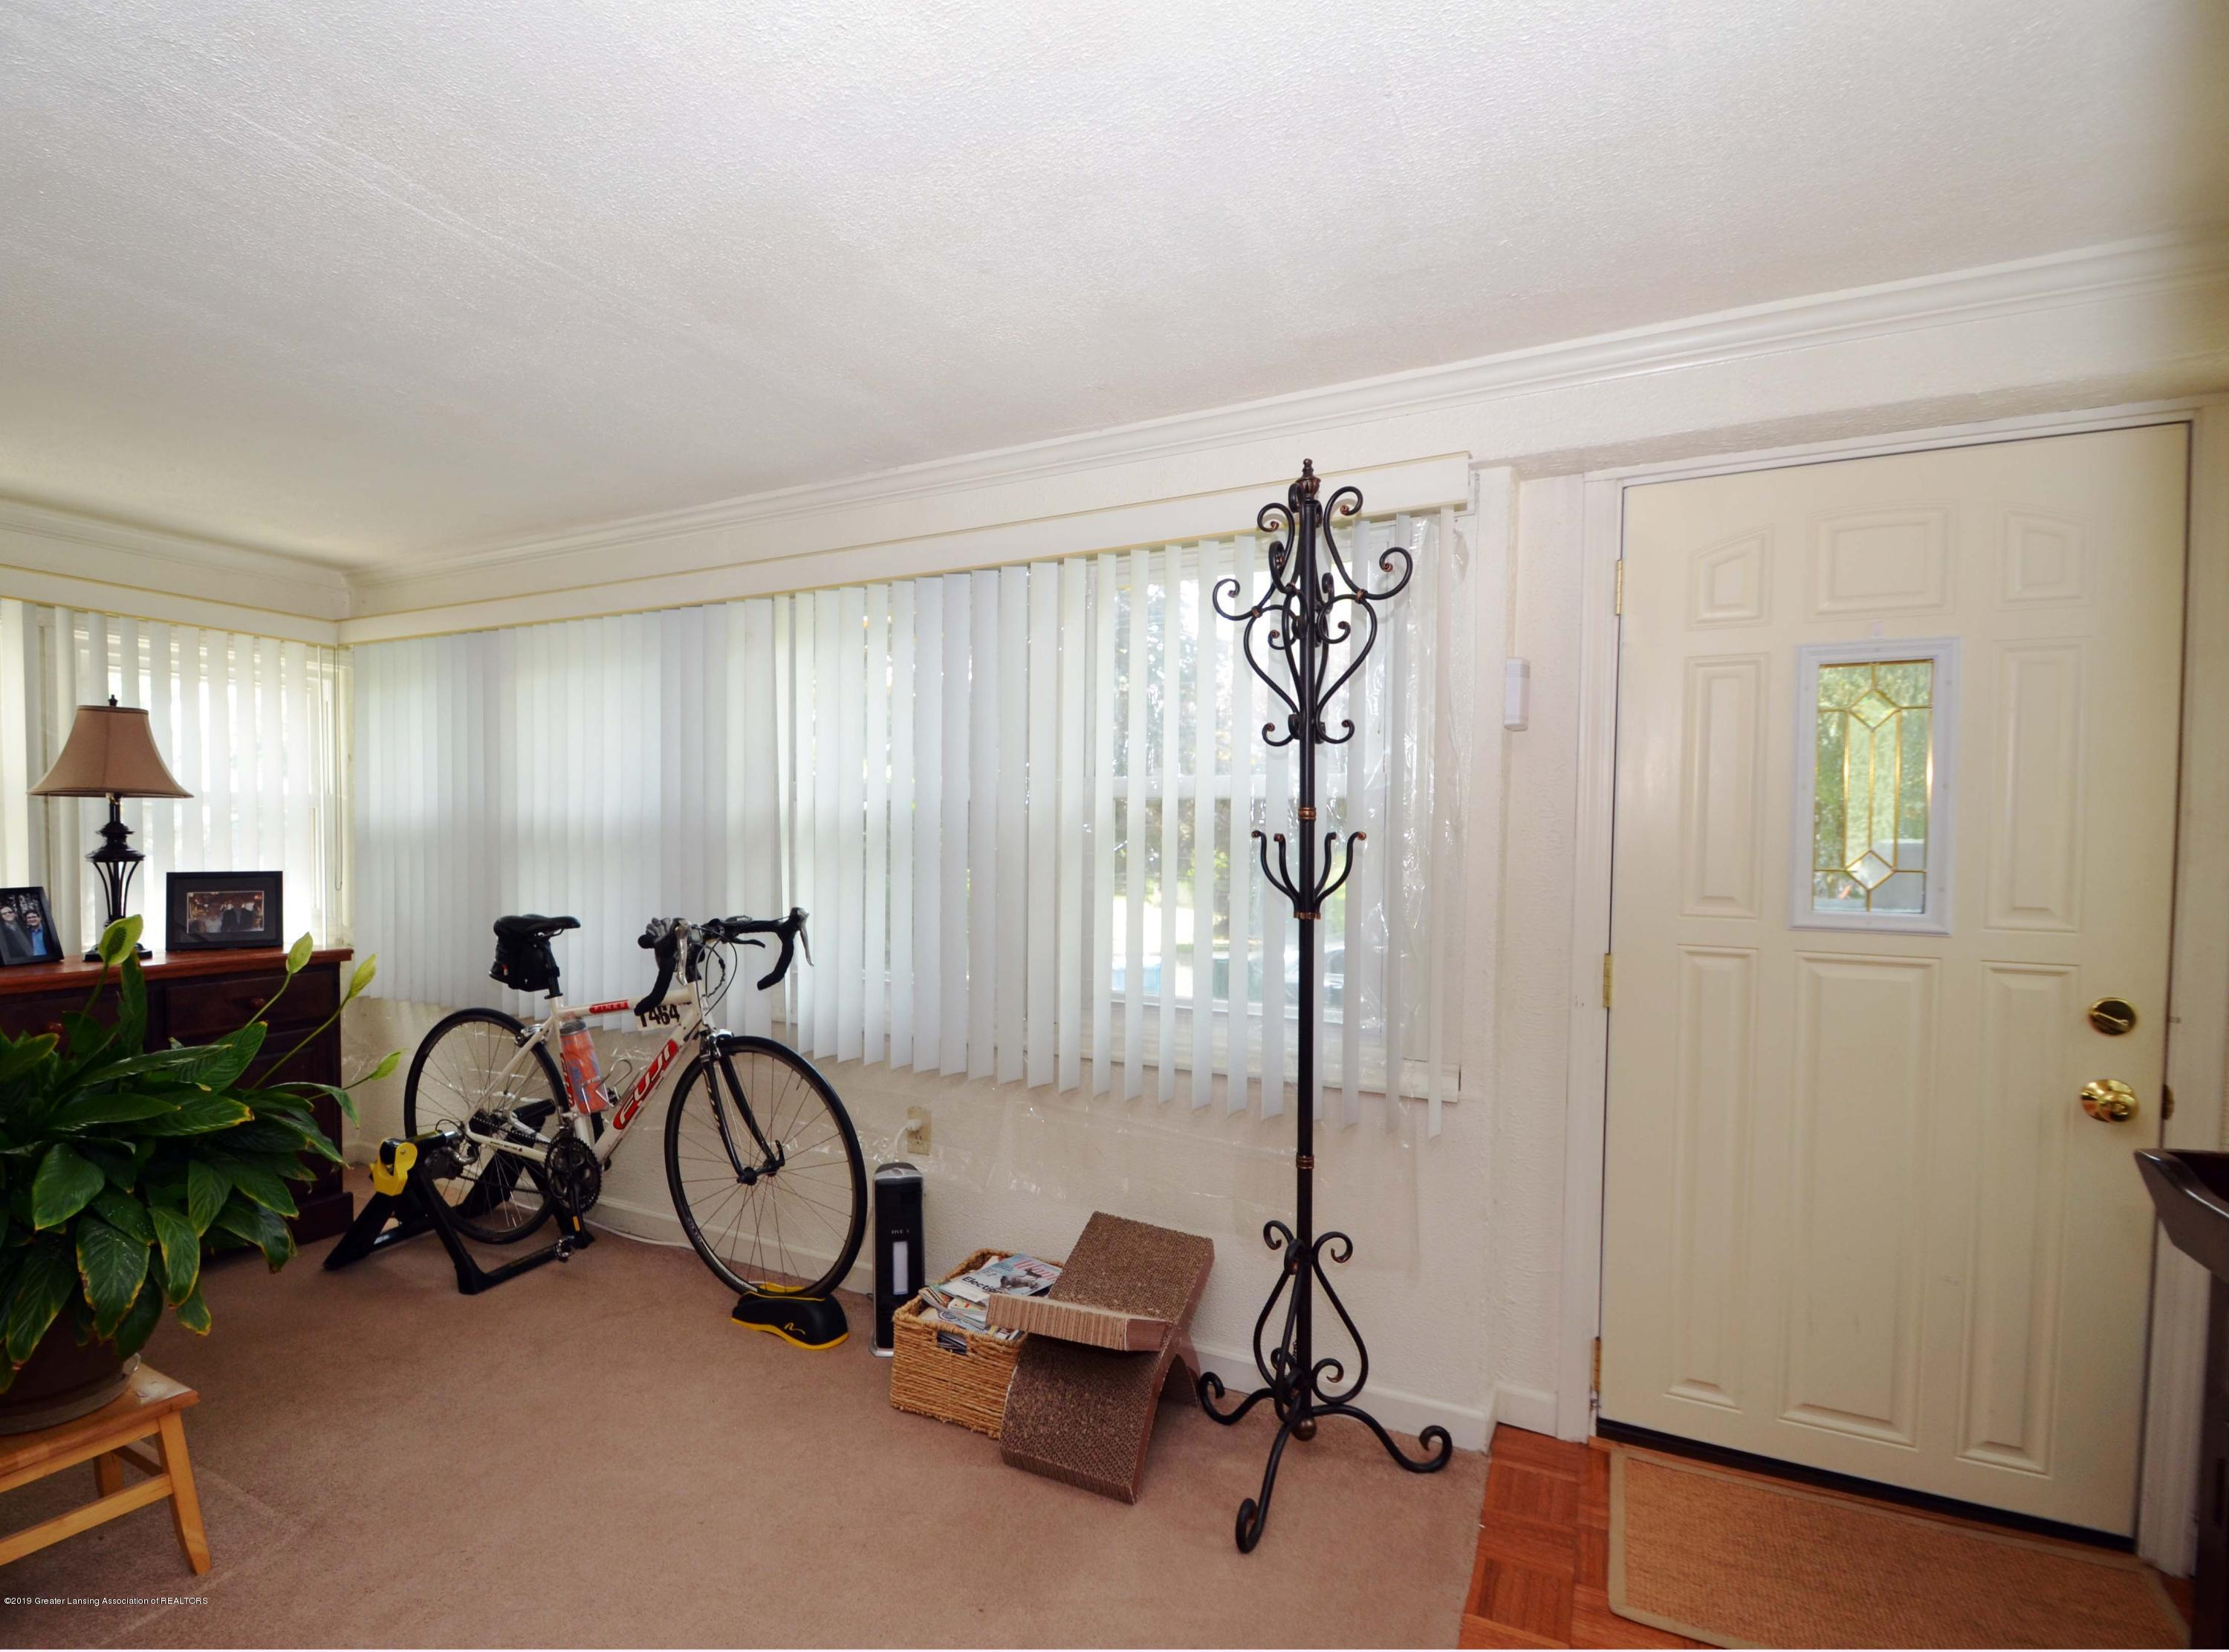 208 N Clemens Ave - Front Room - 2